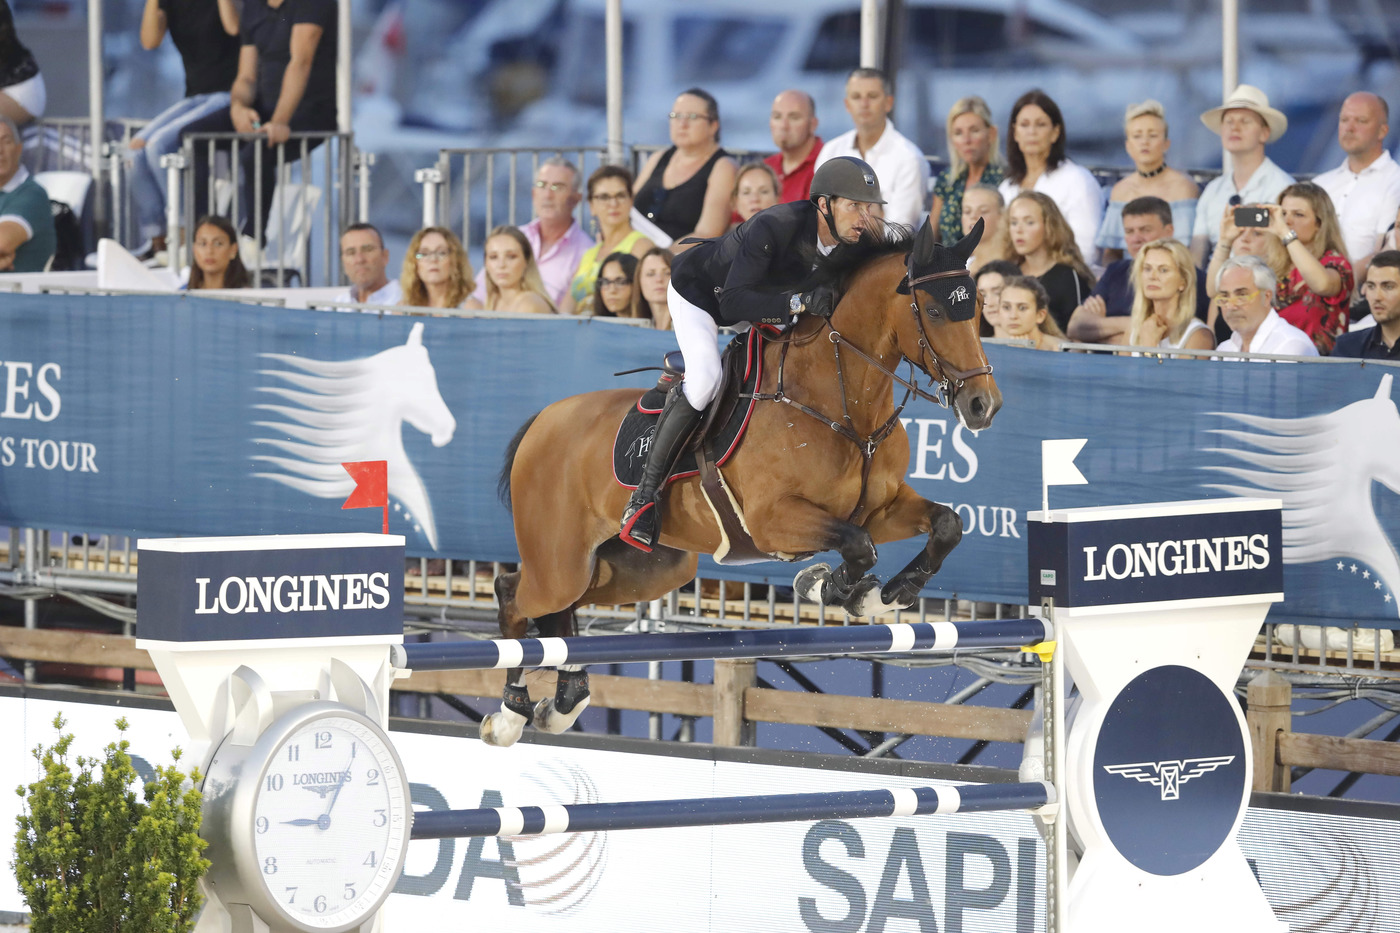 Longines Show Jumping Event: The riders of the Longines Global Champions Tour competed in the magnificent Monaco harbour 6